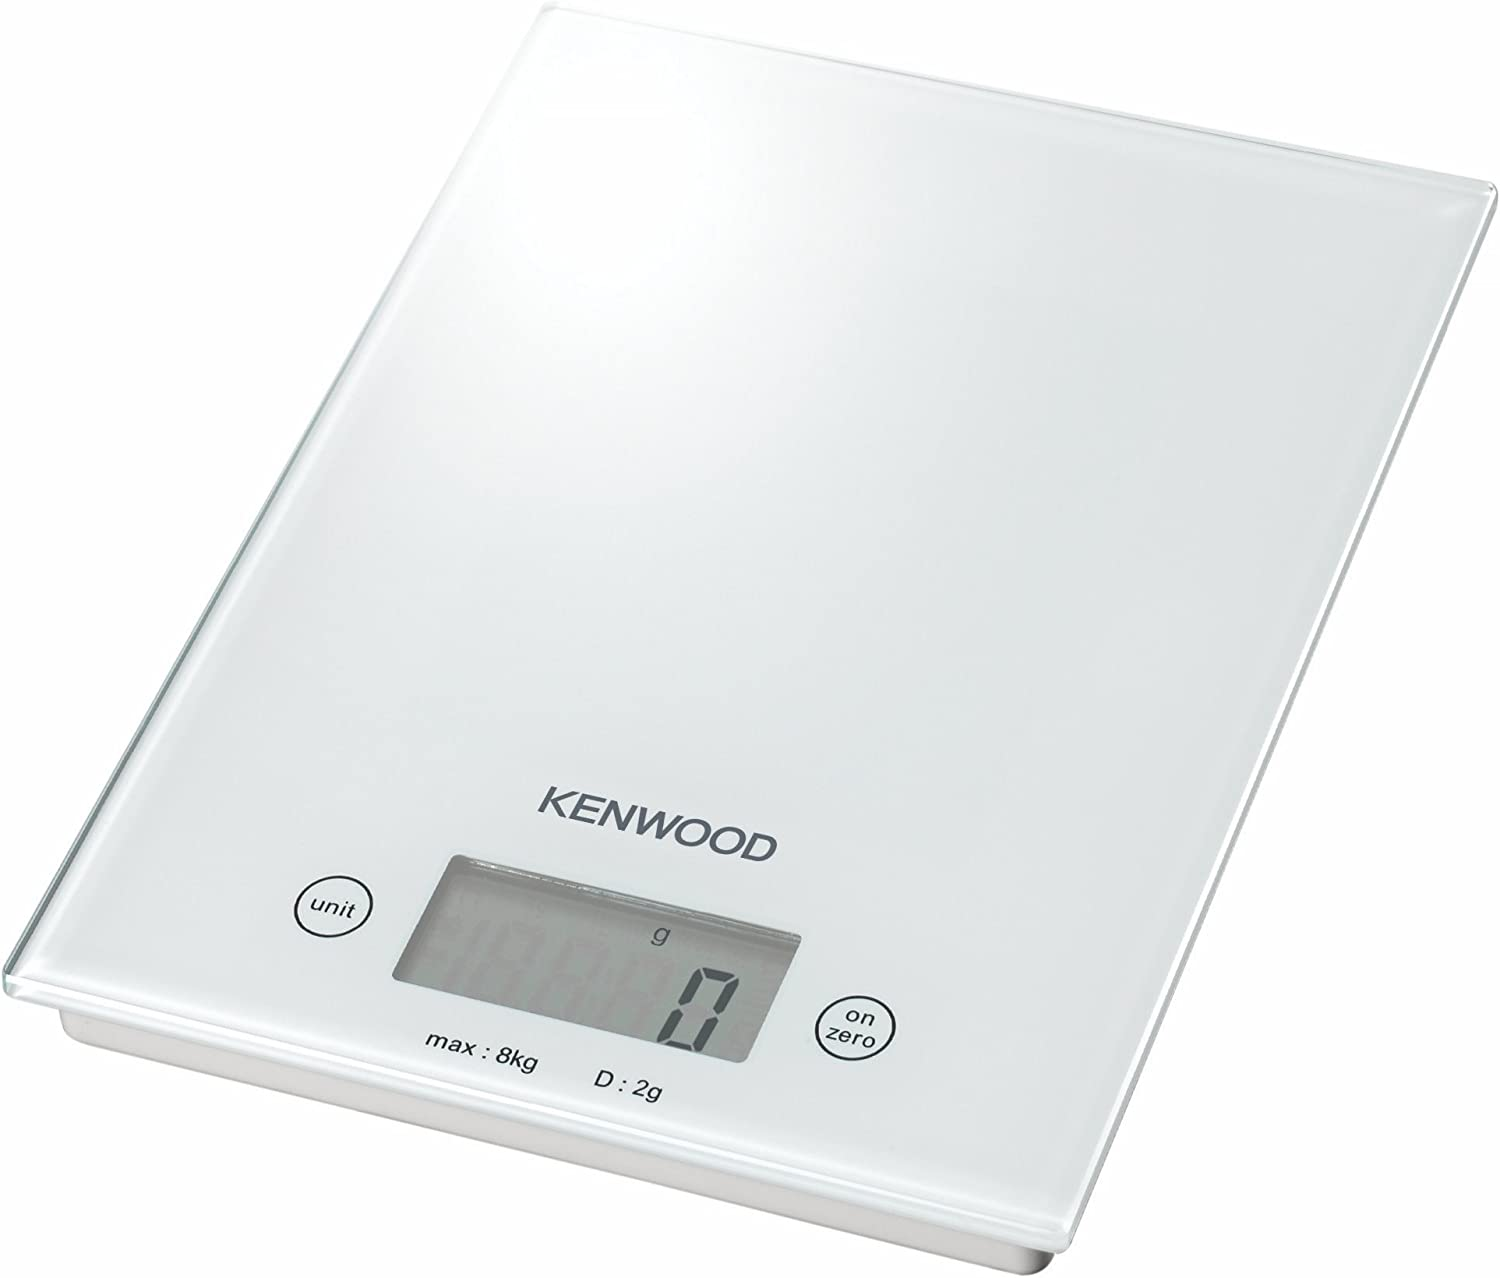 Kenwood DS401 Báscula digital de cocina, vidrio, color blanco ...